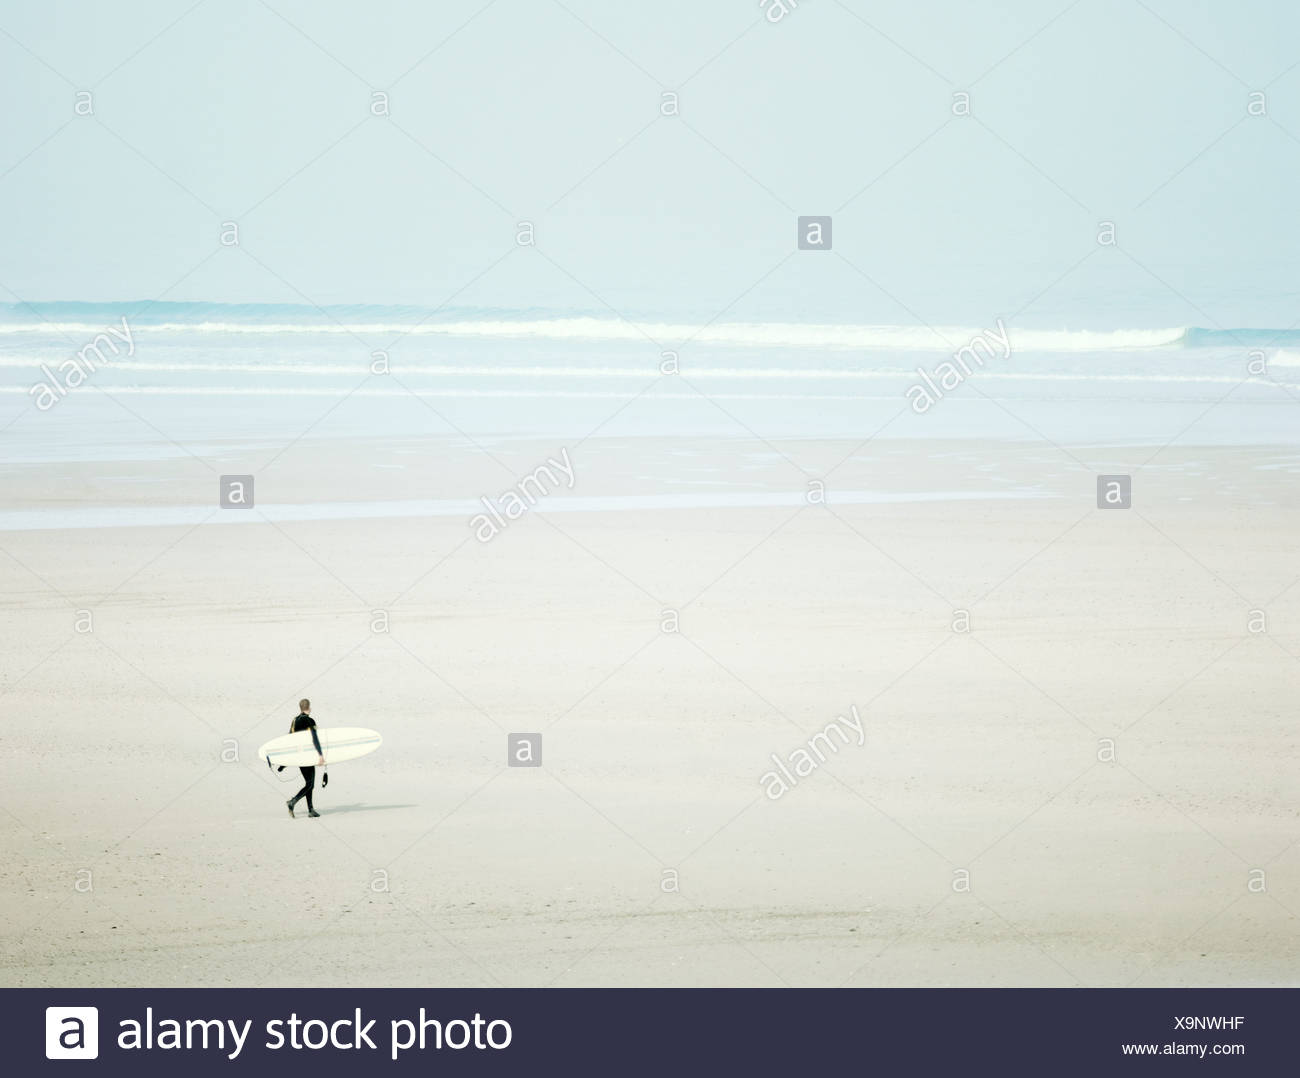 Surfer on beach - Stock Image